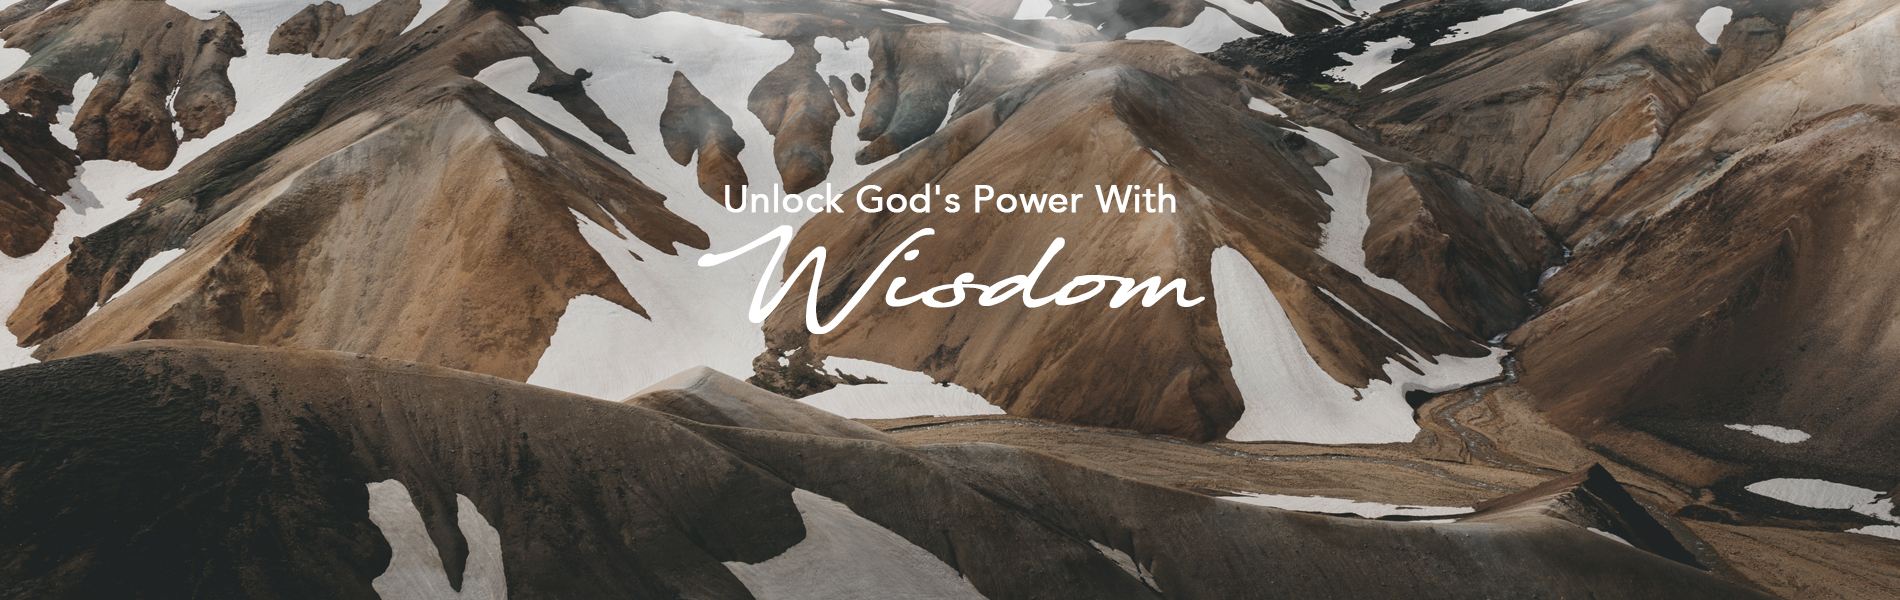 2019_08_Aug_Unlock_Gods_Wisdom_EN New Creation TV | Broadcasting the Gospel of Jesus